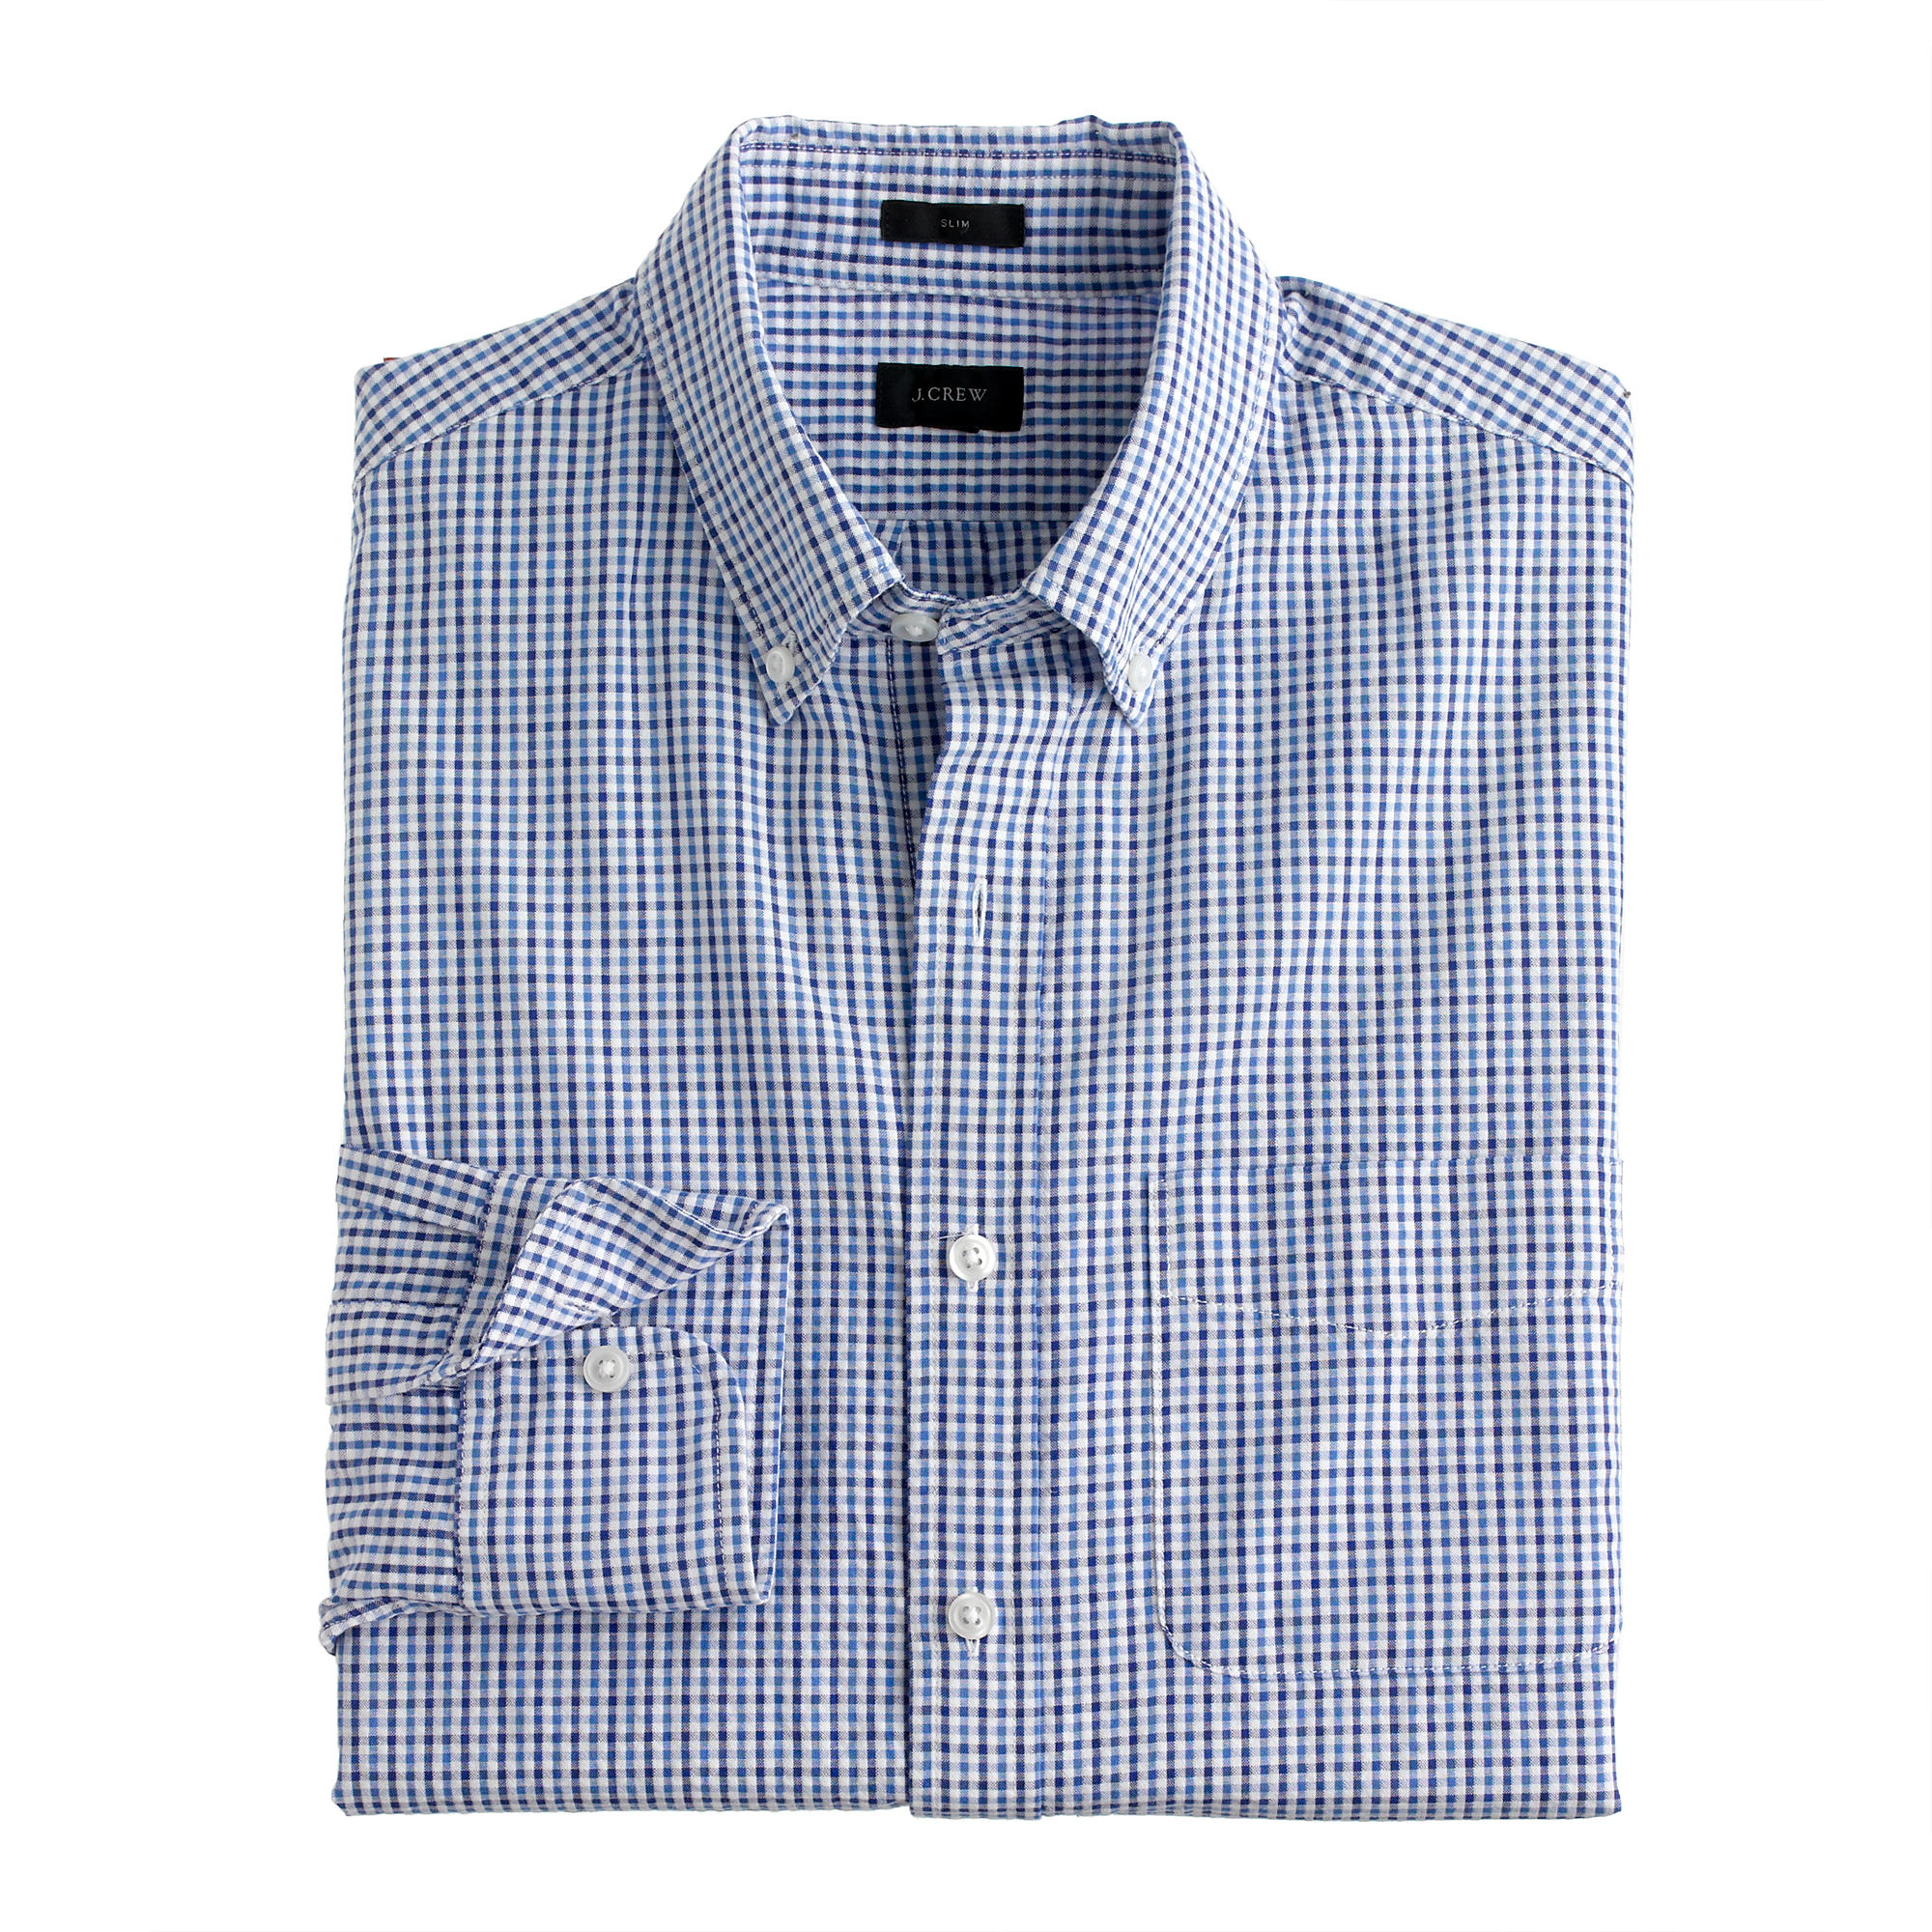 Seersucker shirt in tattersall in blue for men for Mens seersucker shirts on sale